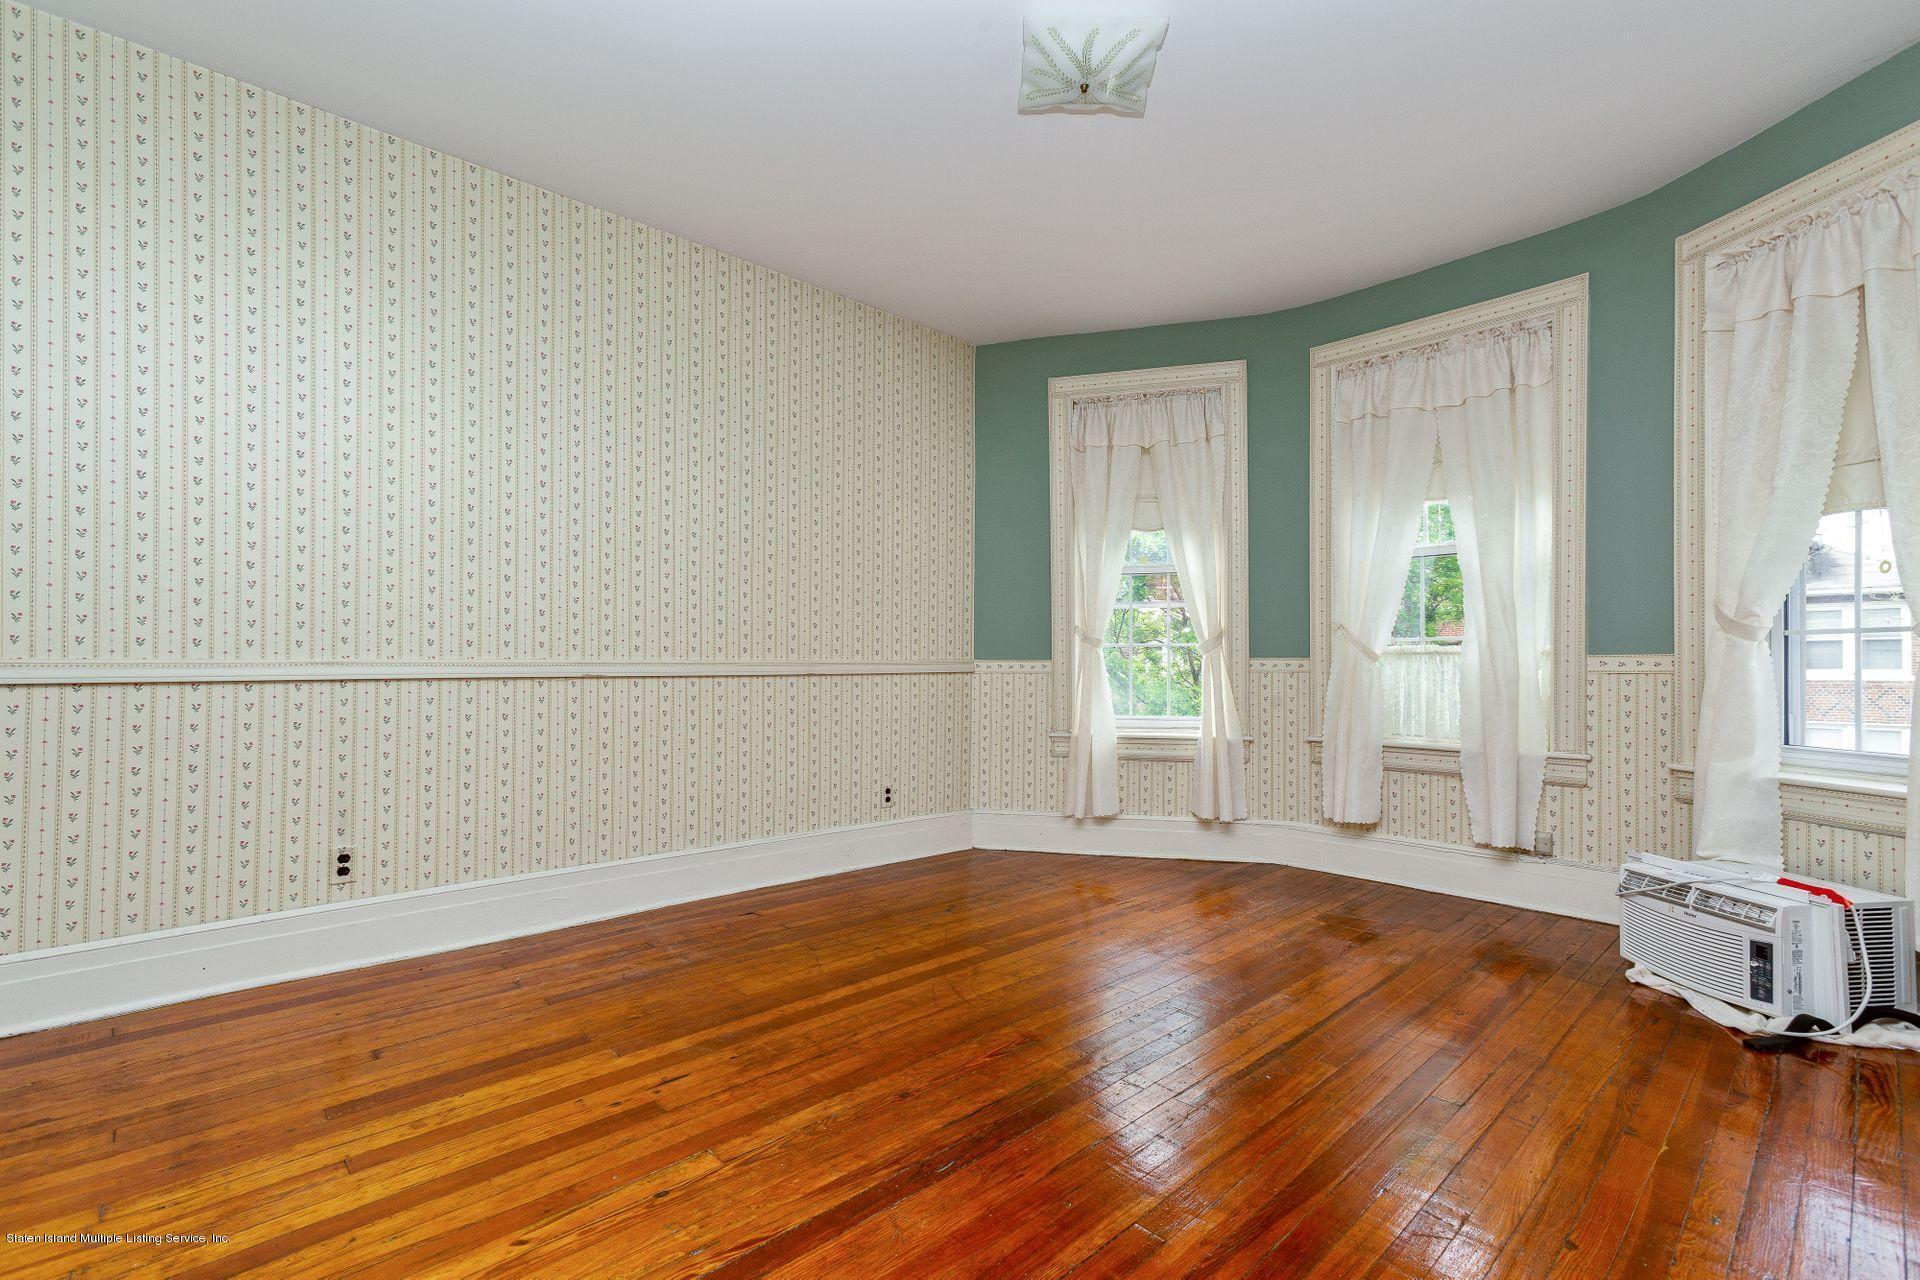 Single Family - Attached 83 Chester Avenue  Brooklyn, NY 11218, MLS-1131841-9